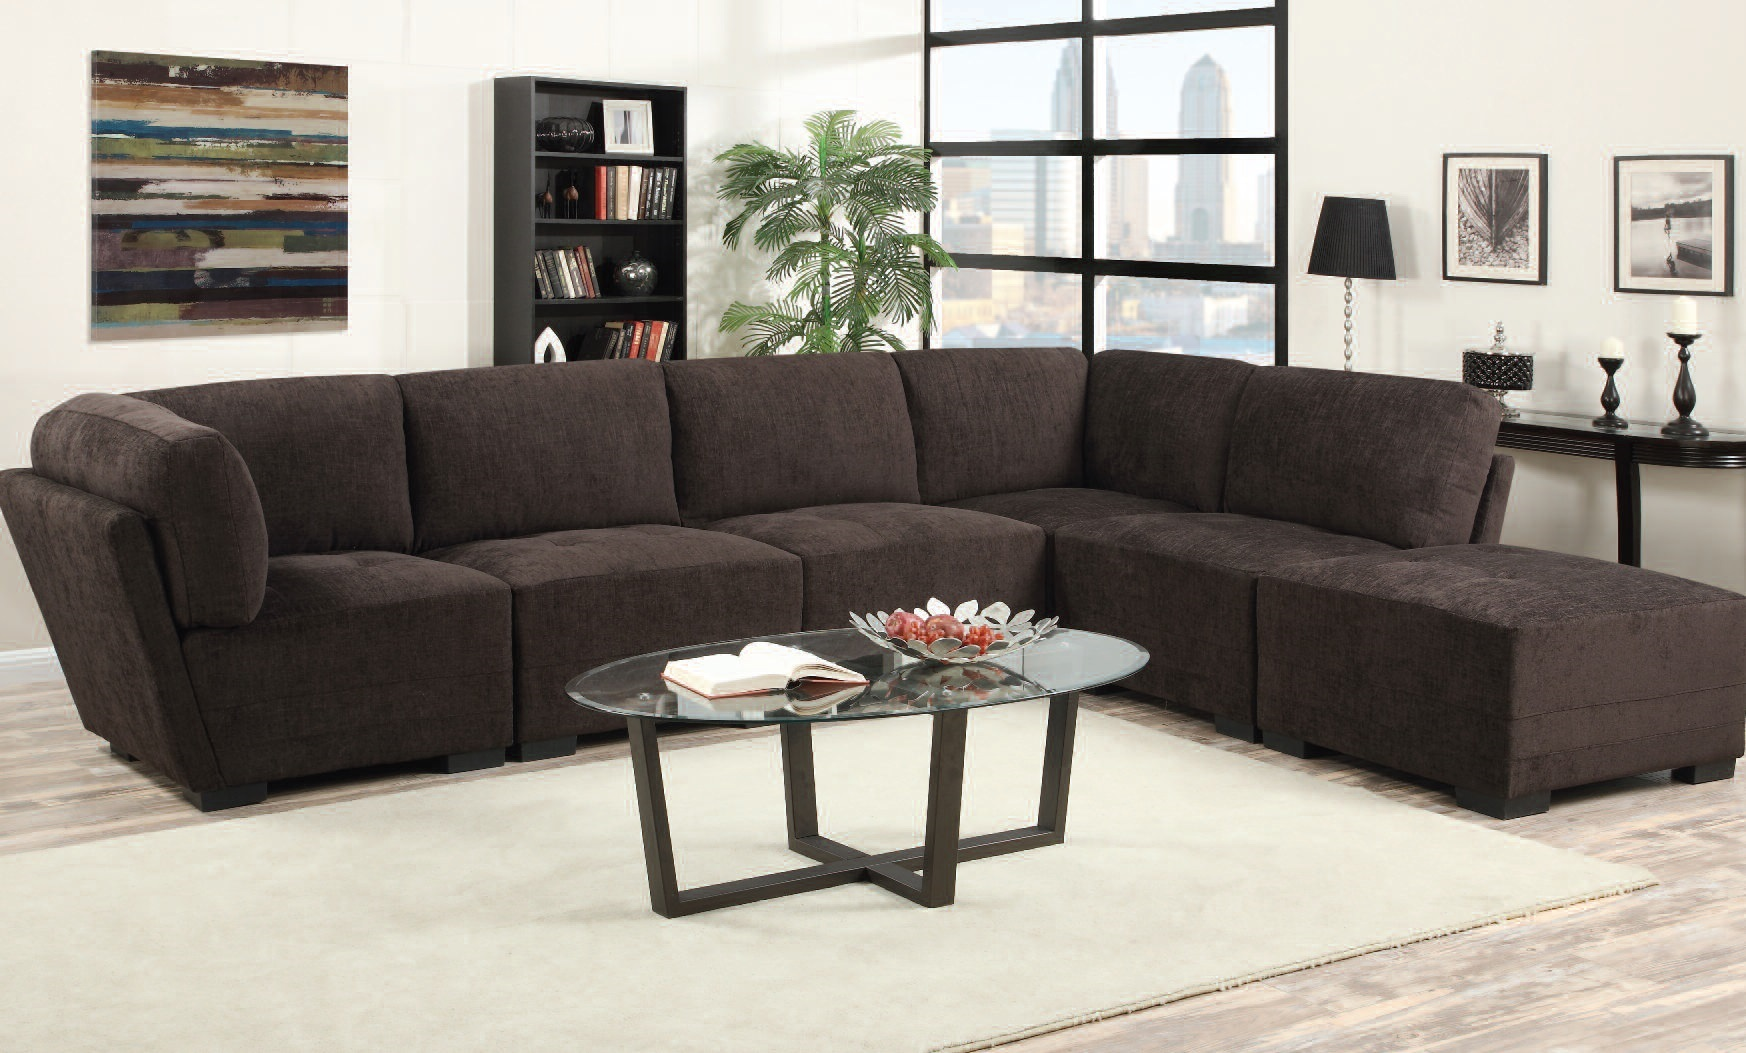 Freddie Violet Chenille Sectional Sofa wOttoman The  : ACM 51805 from www.theclassyhome.com size 1746 x 1053 jpeg 410kB